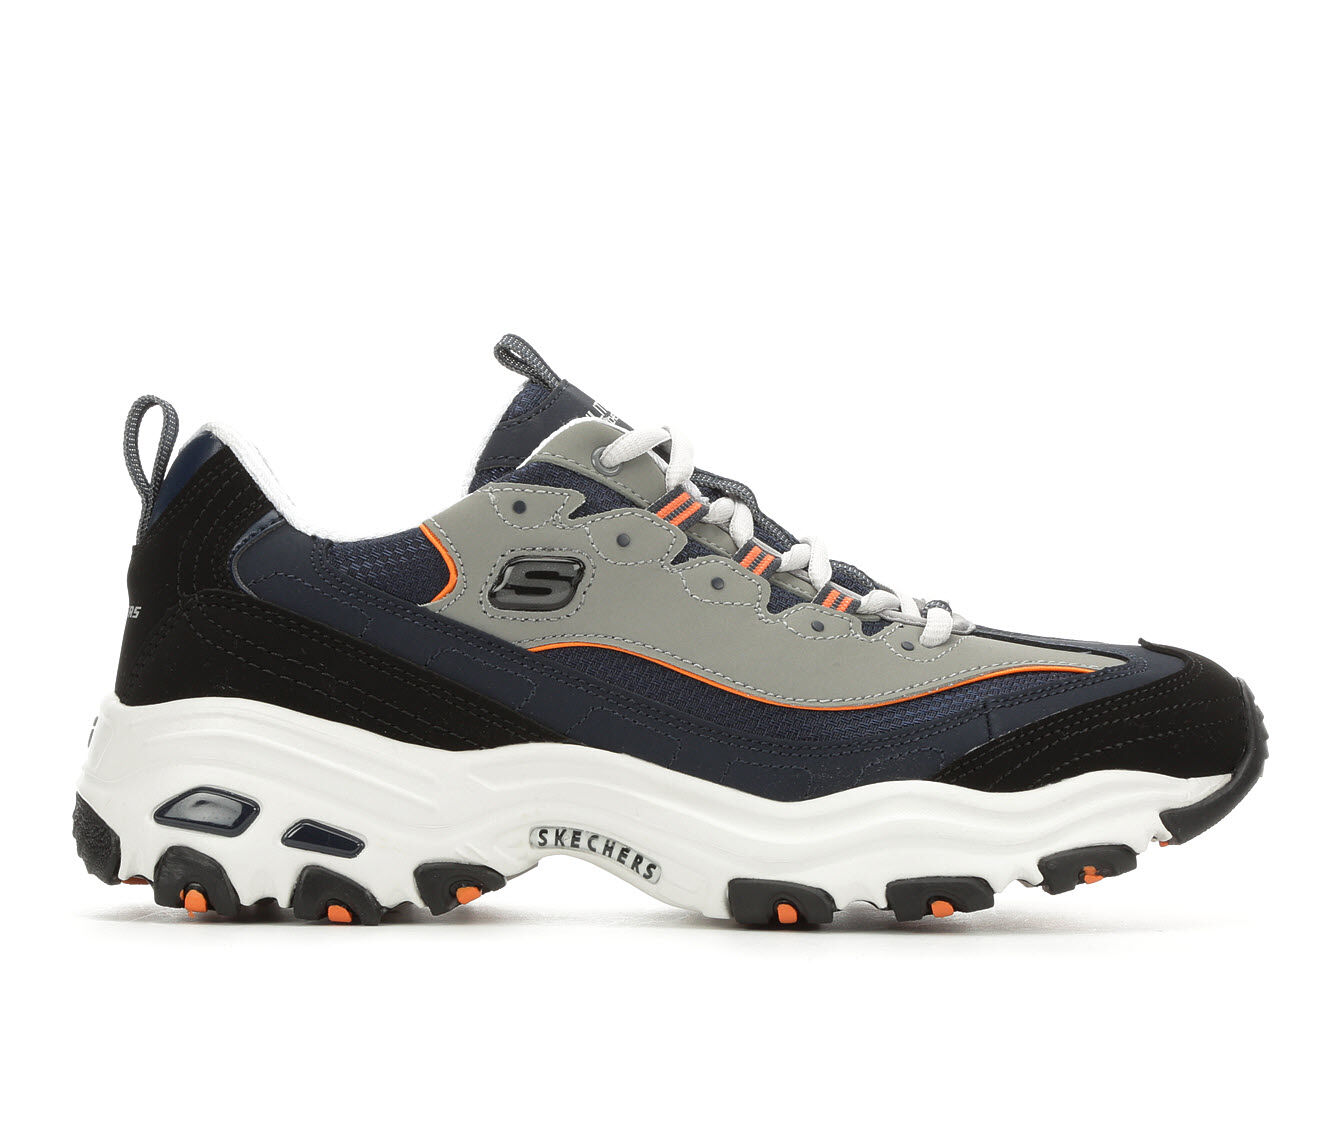 choose latest style Men's Skechers D'Lites 52675 Sneakers Nvy/Wht/Gry/Org